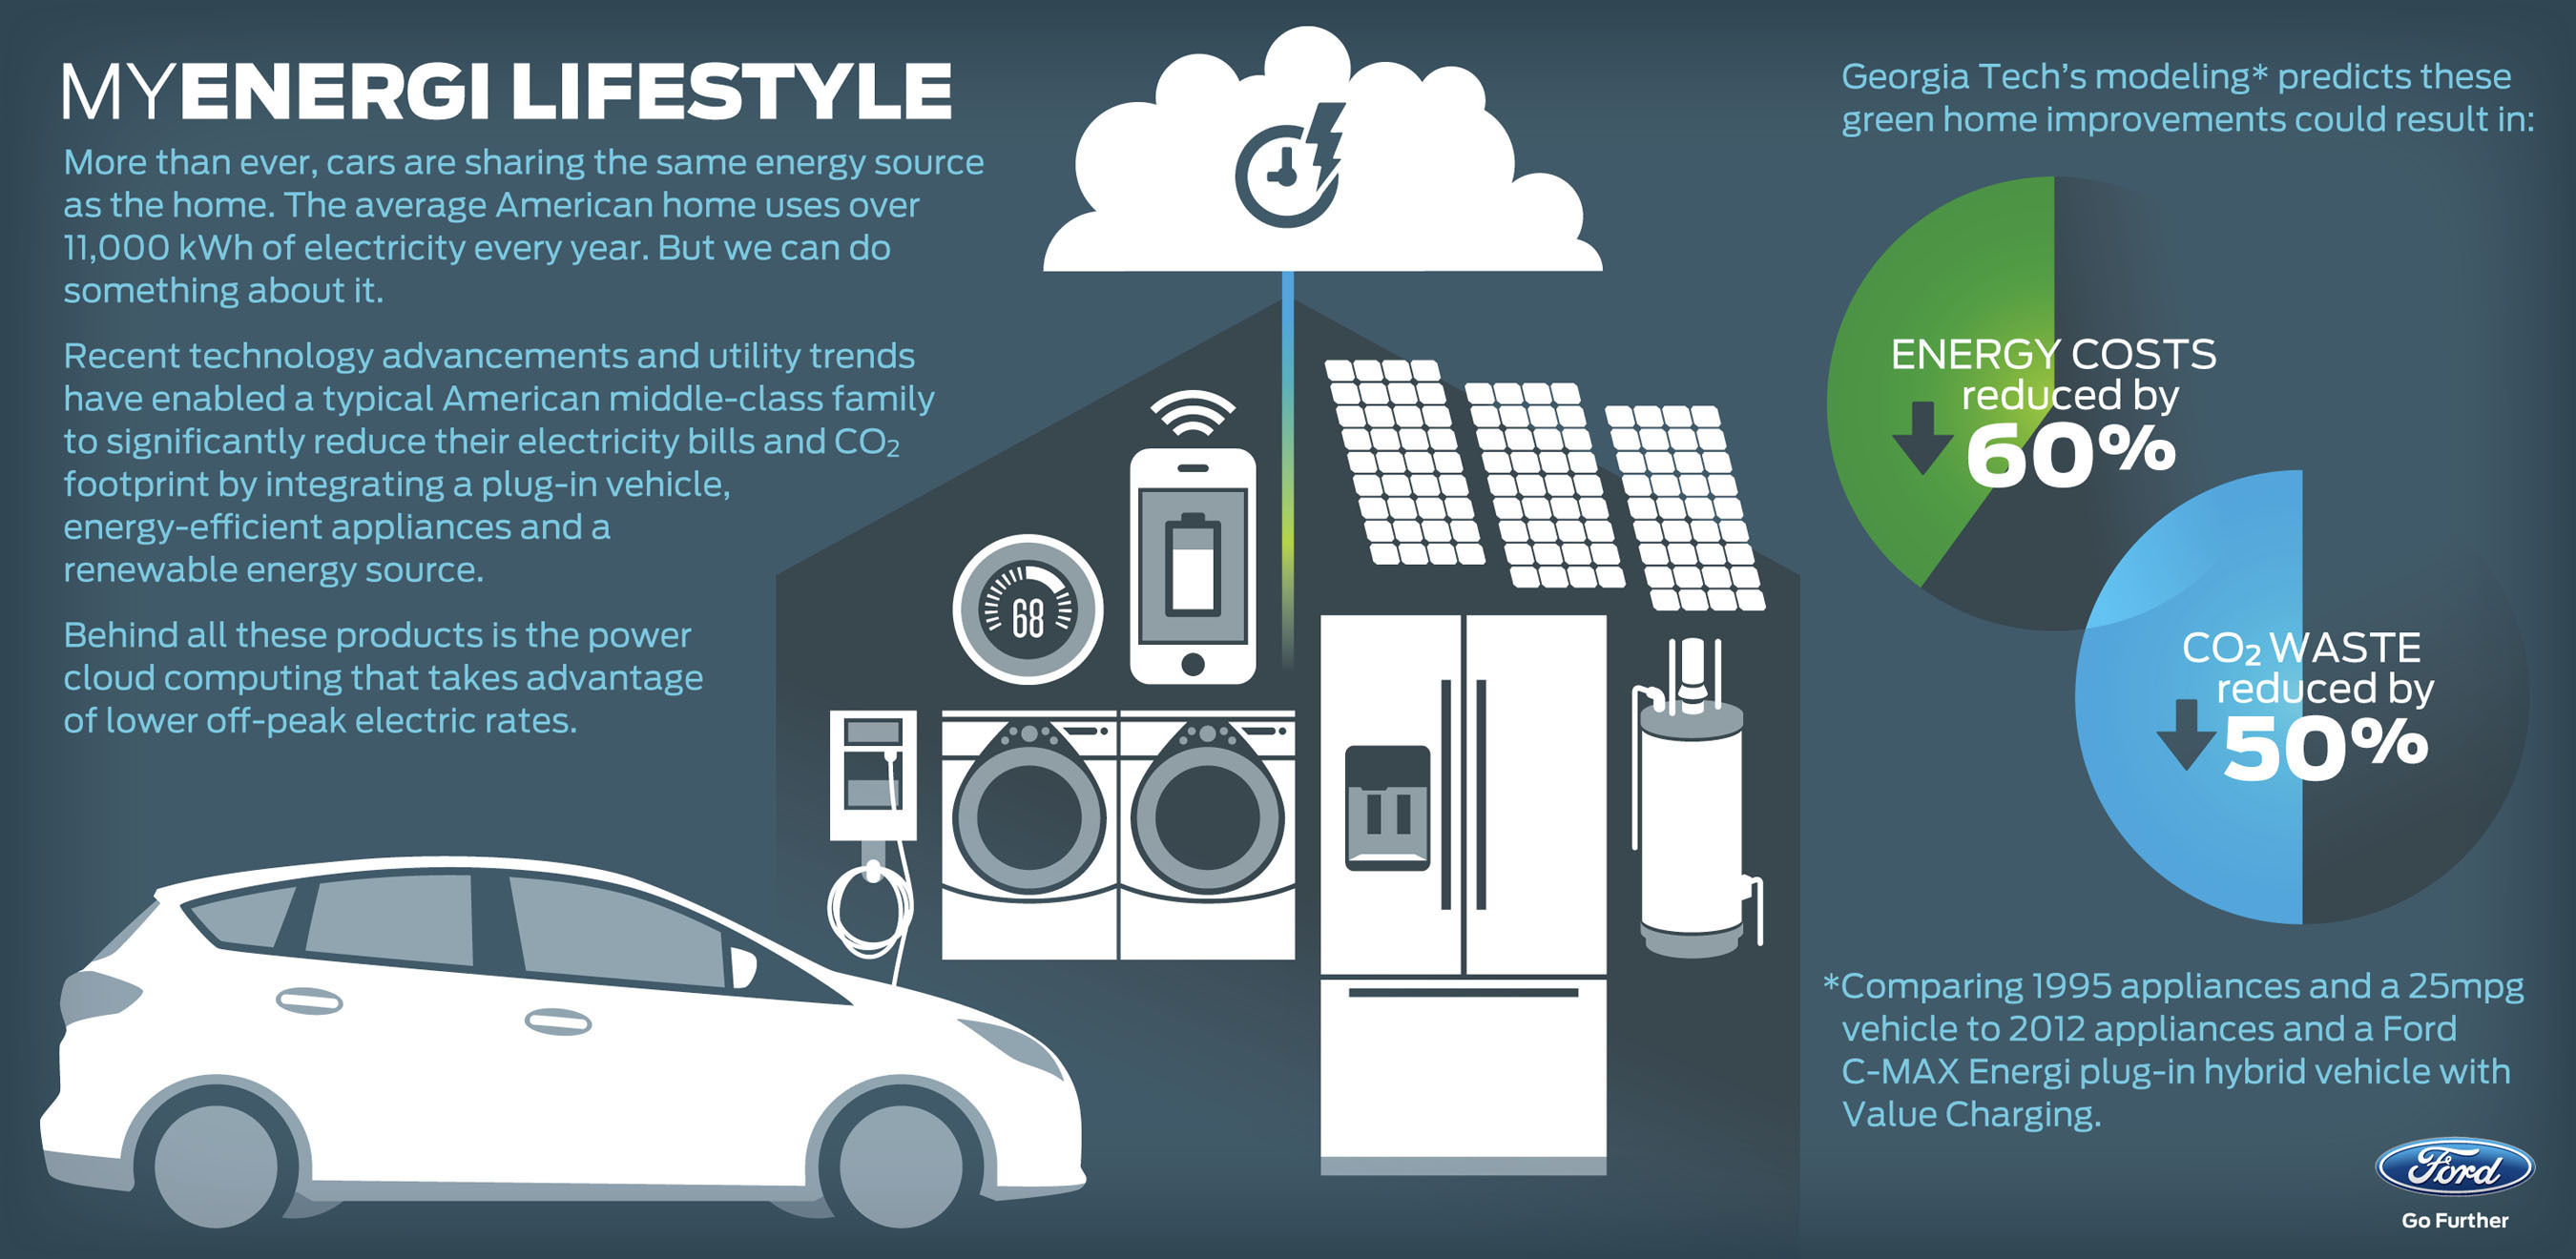 Ford launches MyEnergi Lifestyle collaboration to show how a typical American family can significantly reduce their electricity bills and CO2 footprint by integrating today's home appliance and plug-in vehicle technology.  (PRNewsFoto/Ford Motor Company)